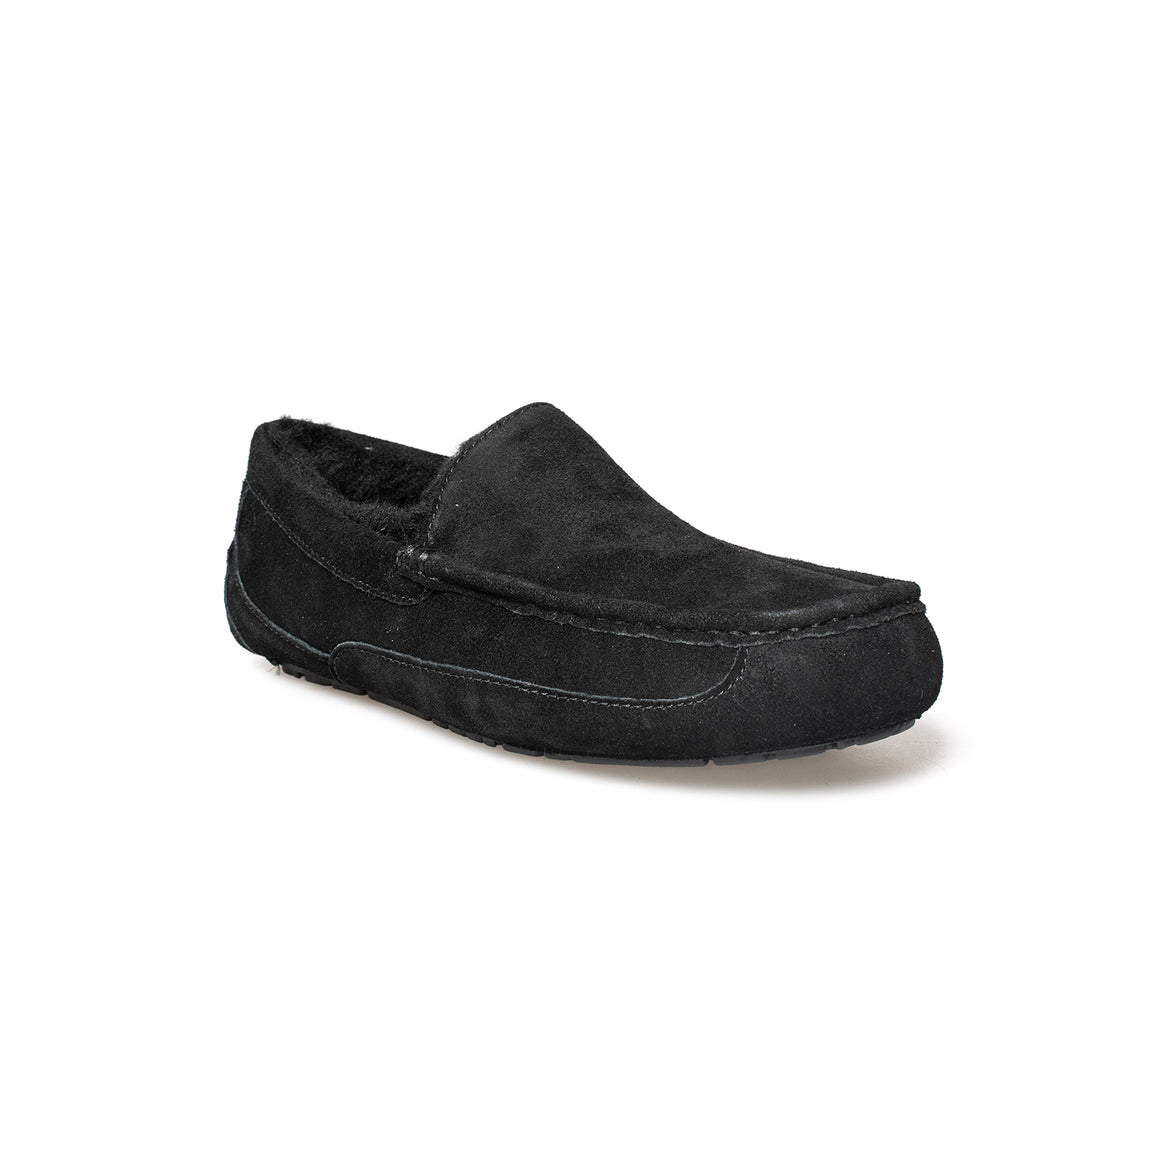 UGG Ascot Oiled Suede Black Slippers - Men's